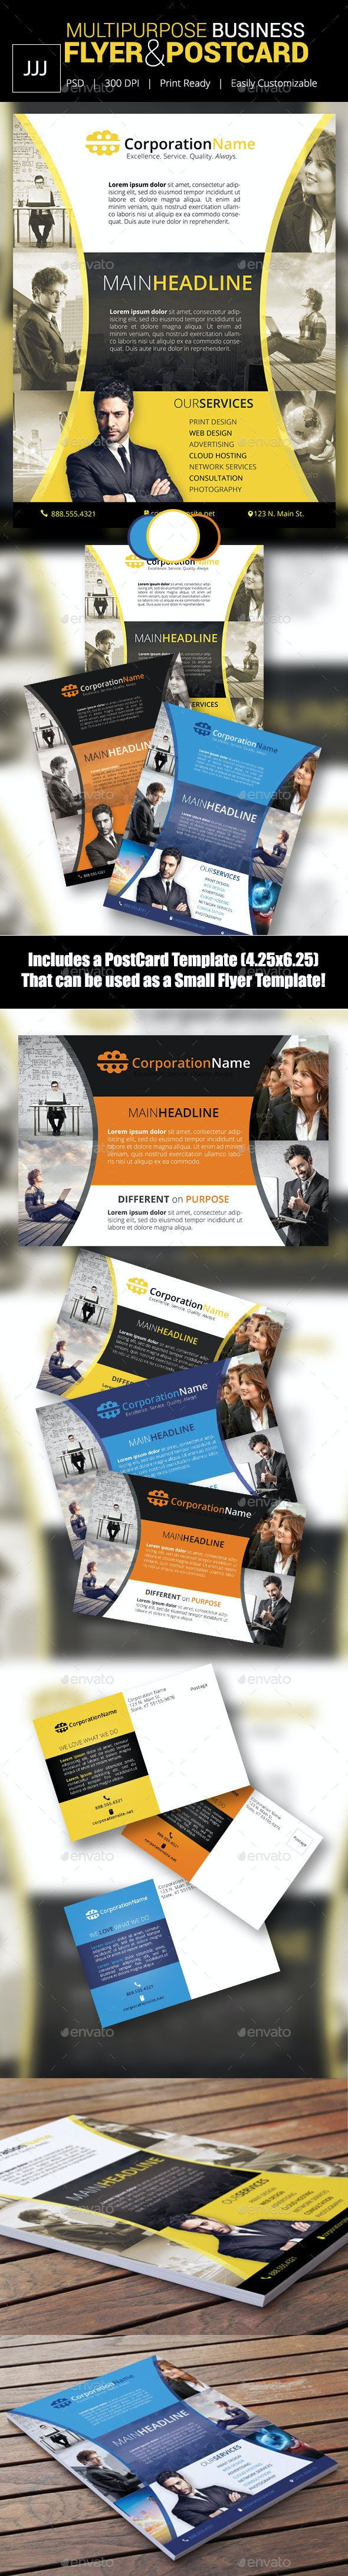 Business Flyer 43 with Postcard - Corporate Flyers